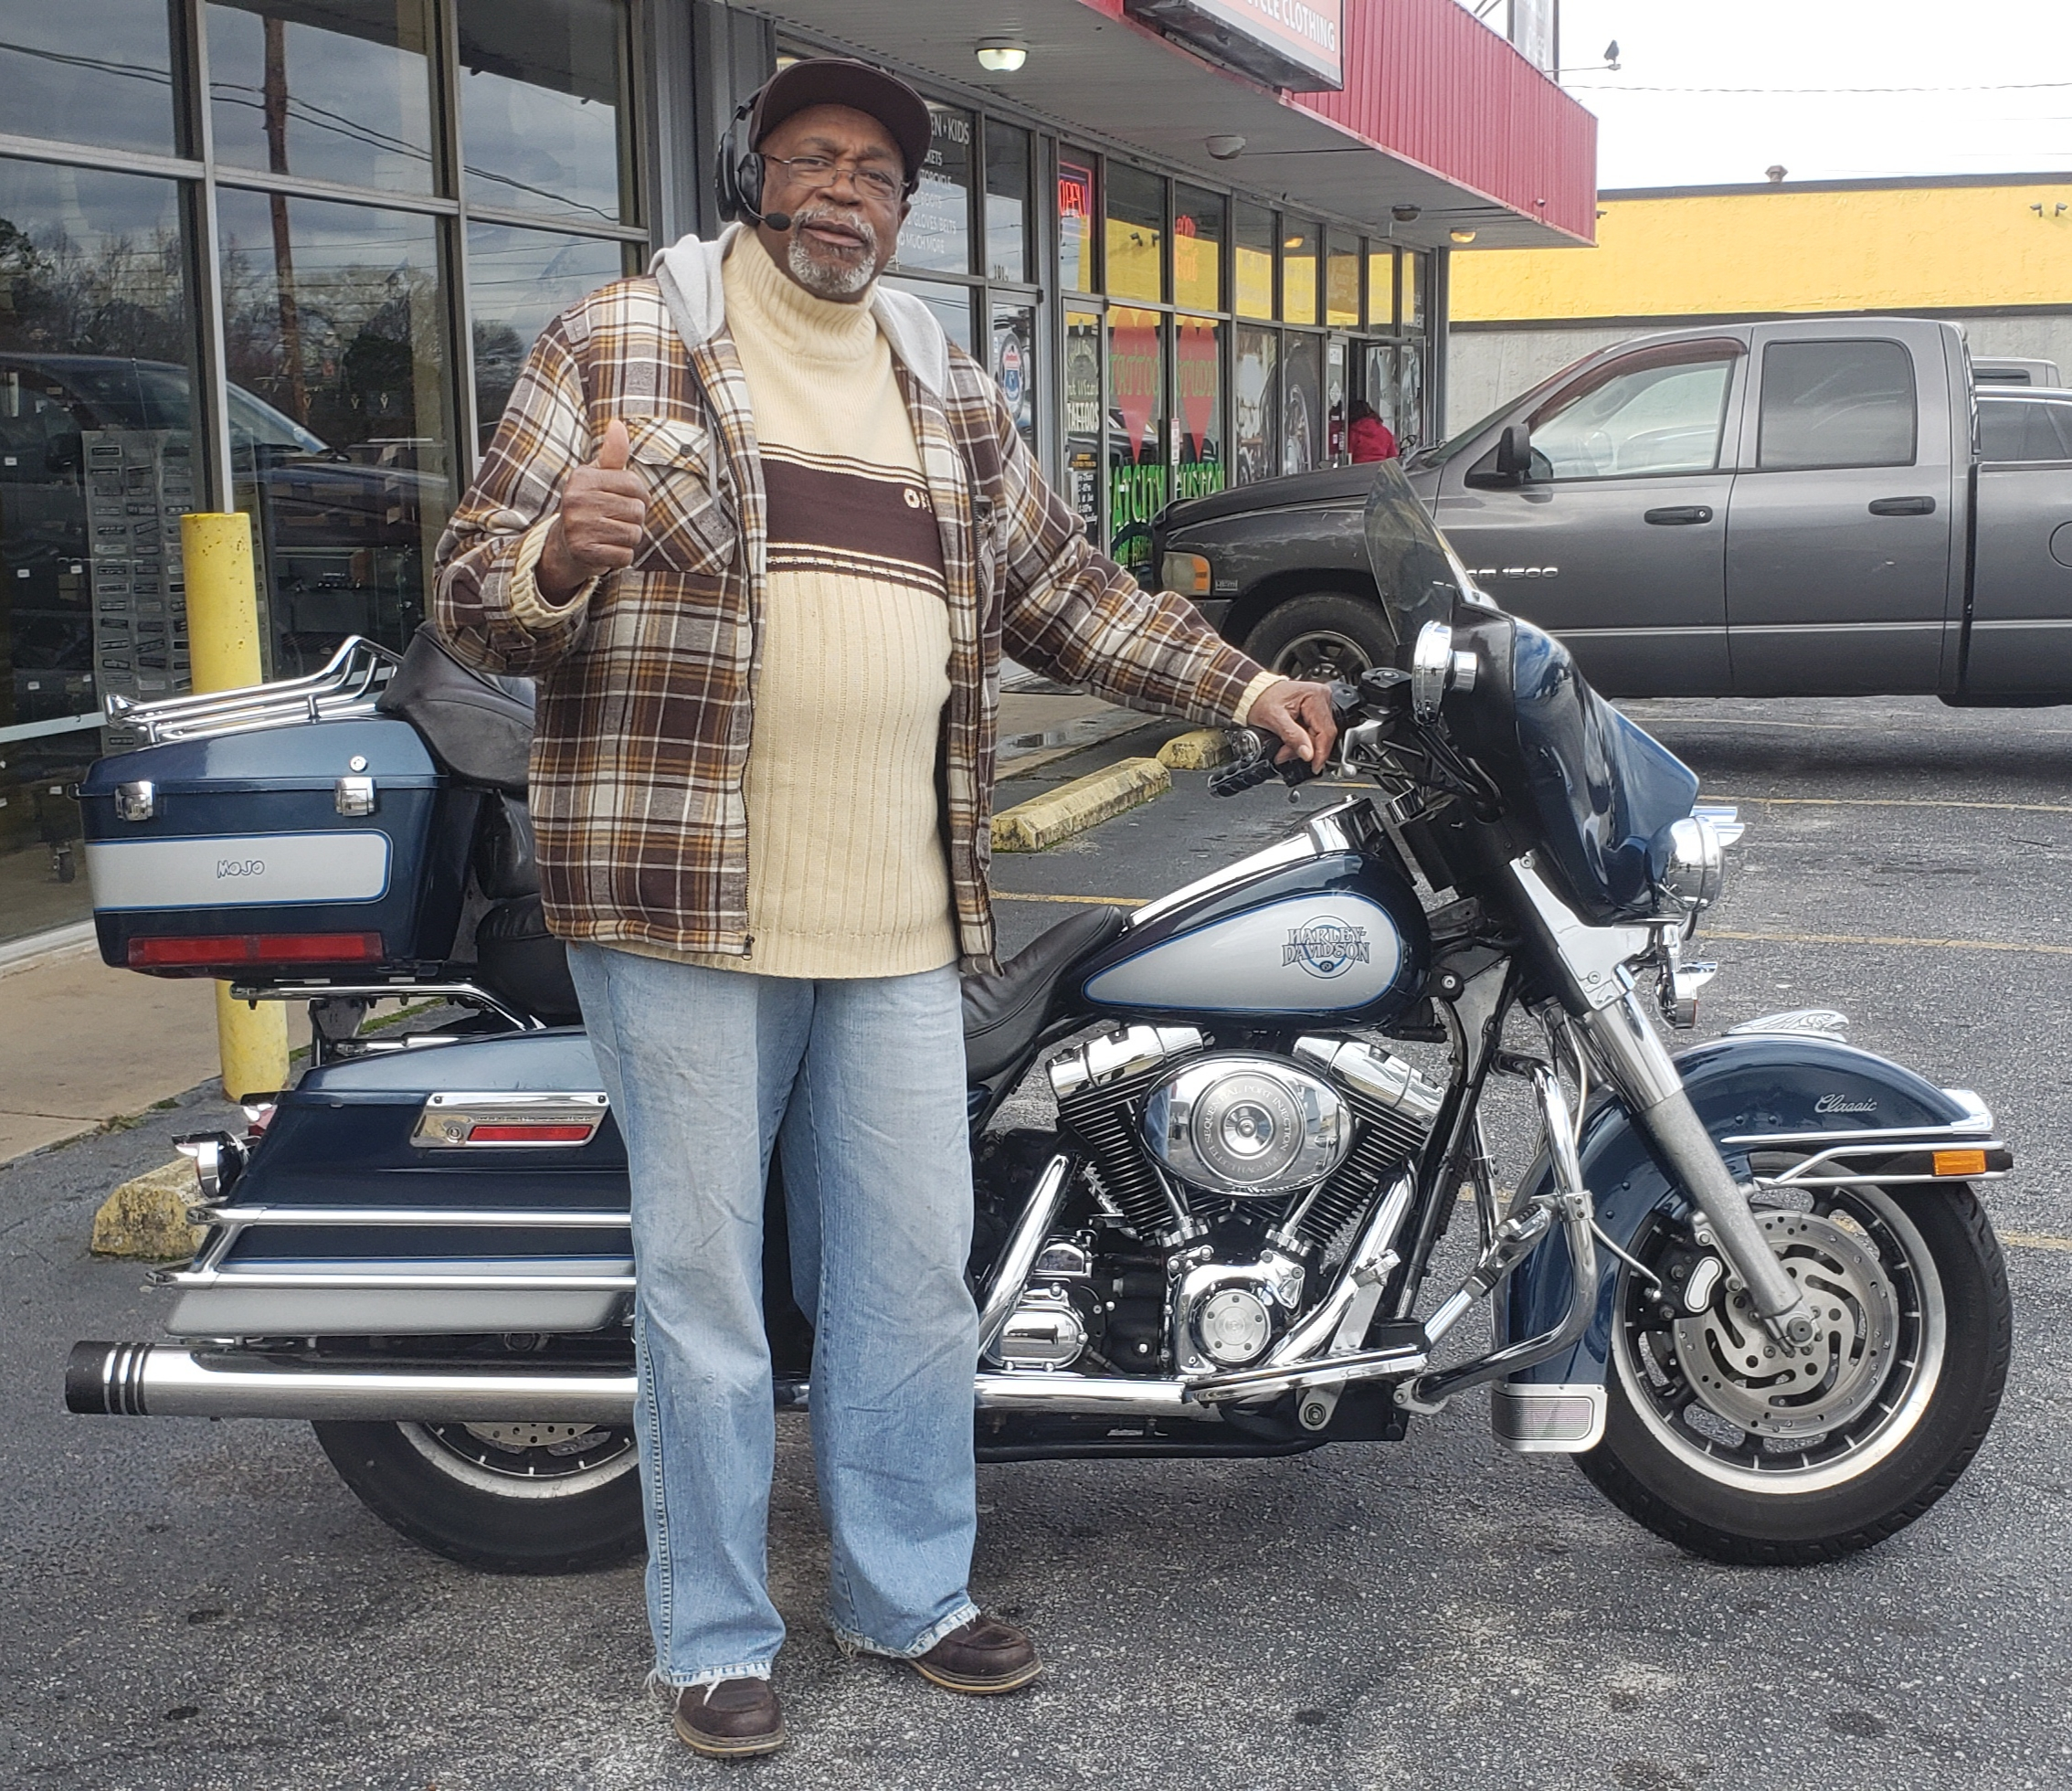 Joe F. with his 2001 Harley-Davidson FLHTC Electra Glice Classic